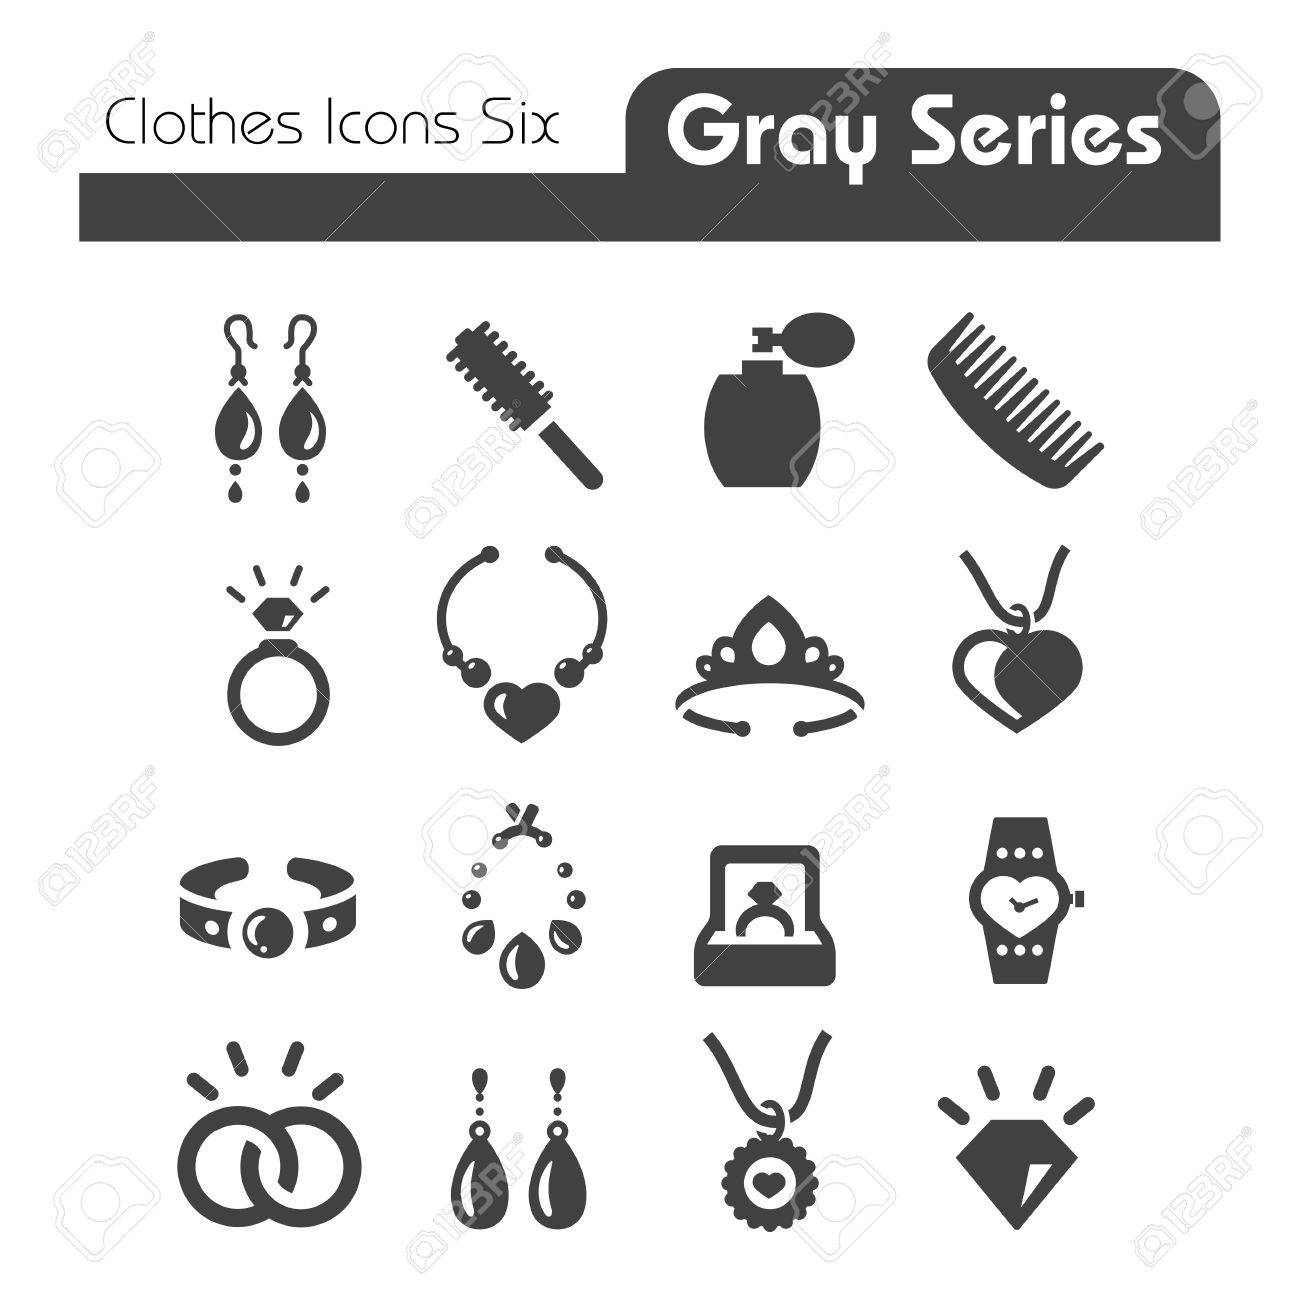 Clothes Icons Gray Series Six - 27357728